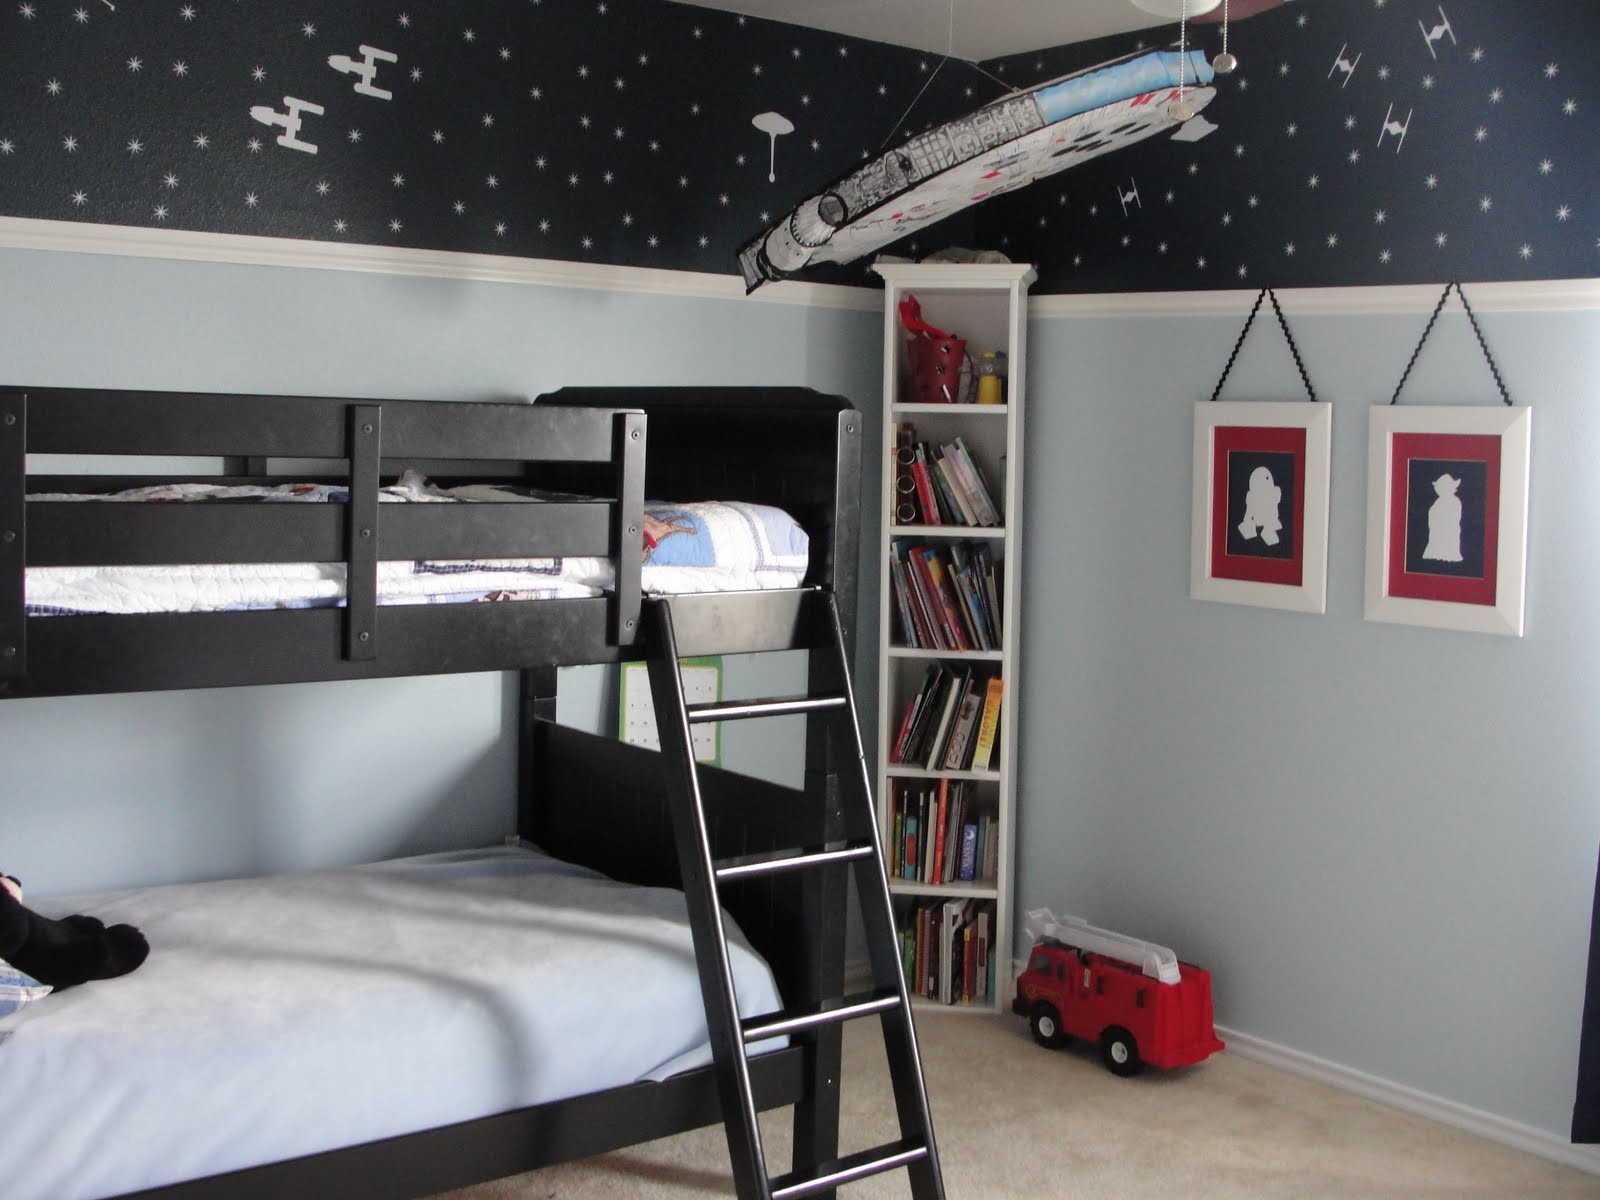 Star Wars Bedroom Decor  Piccadilly Peddlers Boy s Star Wars Room